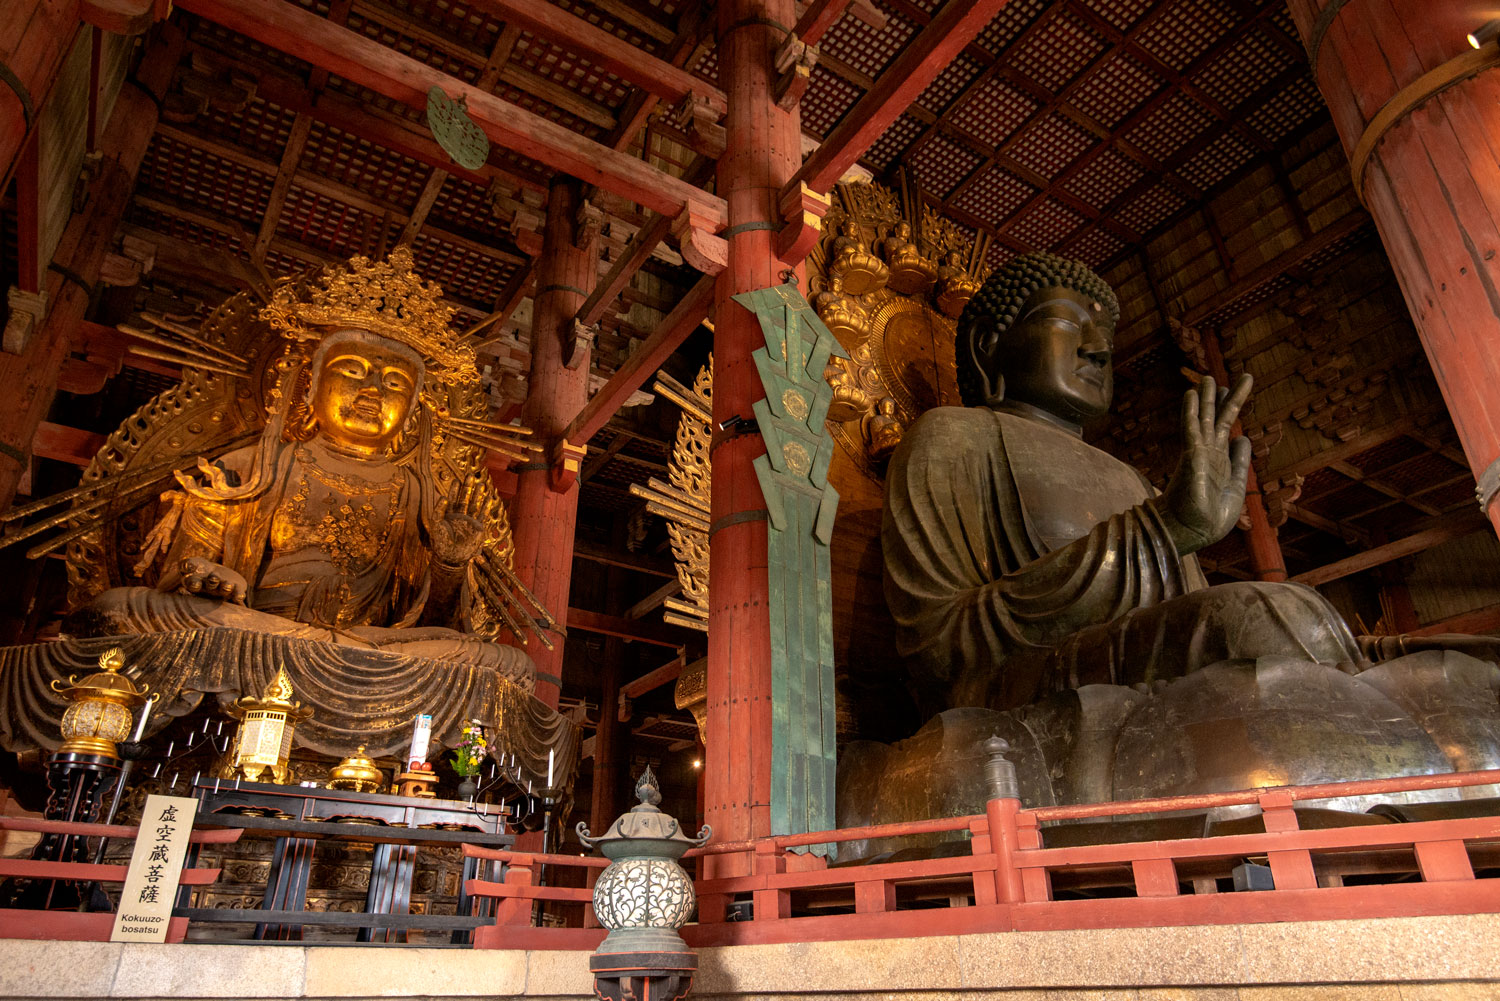 Giant Buddha, Giant Hall